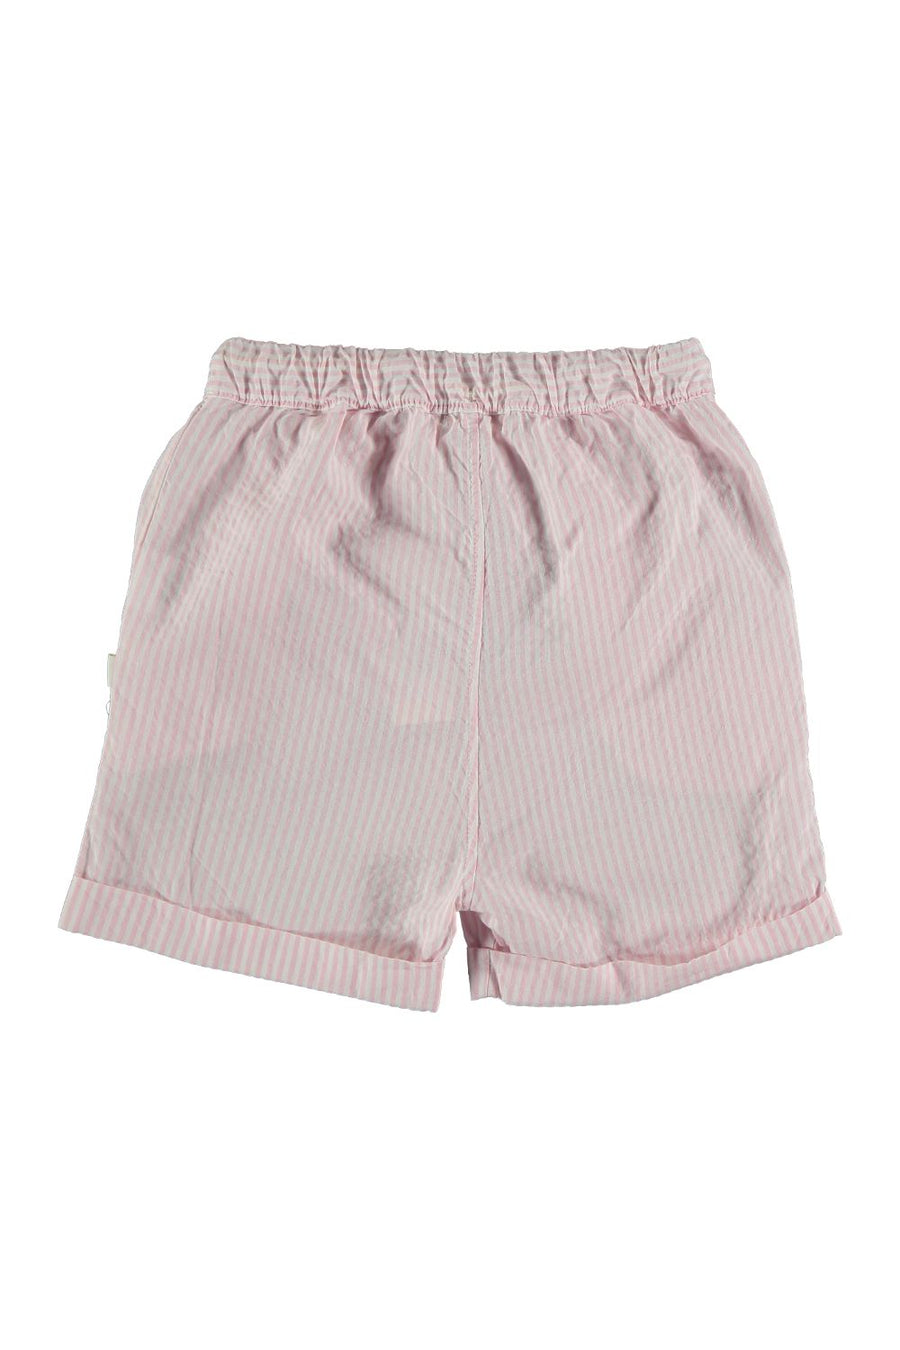 STRIPED SEERSUCKER BERMUDA SHORTS